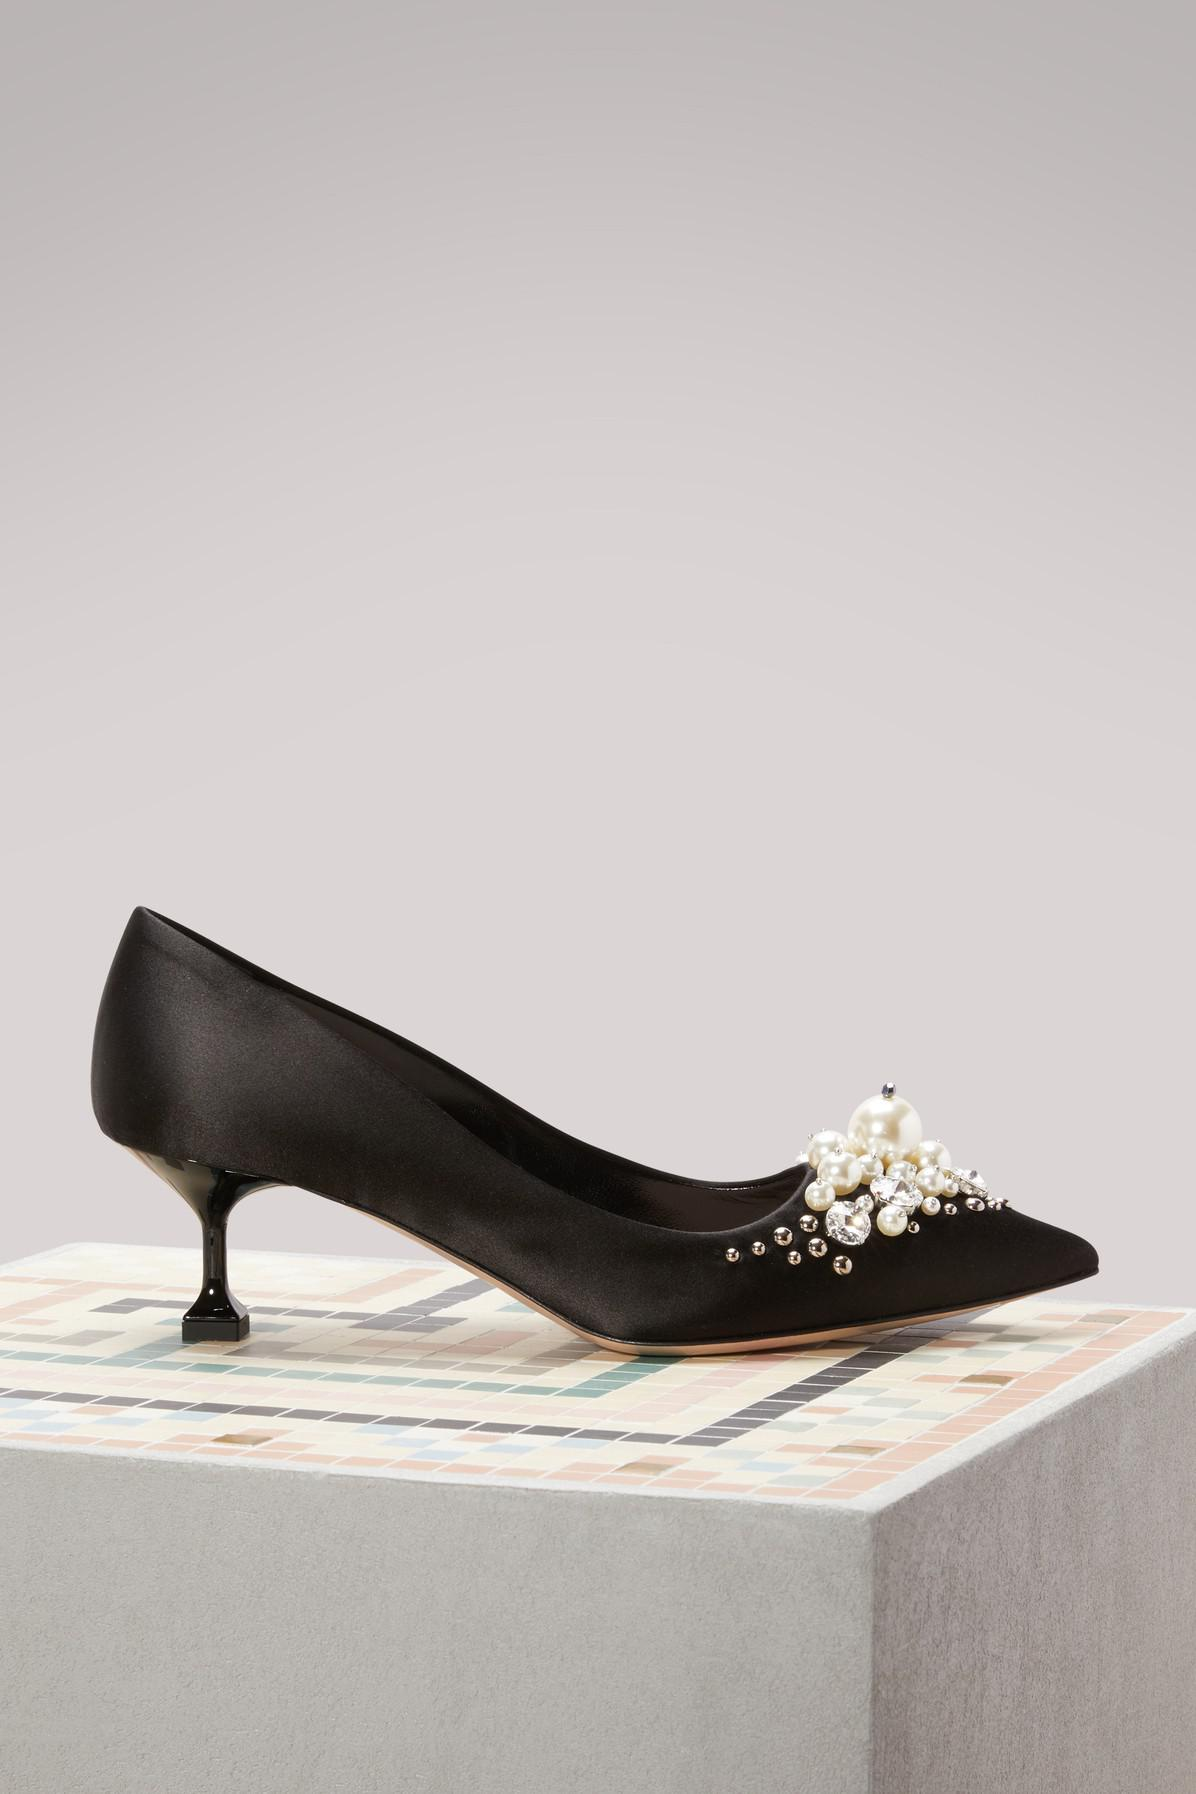 Miu Miu Mid-Heel Pumps With Pearl Details